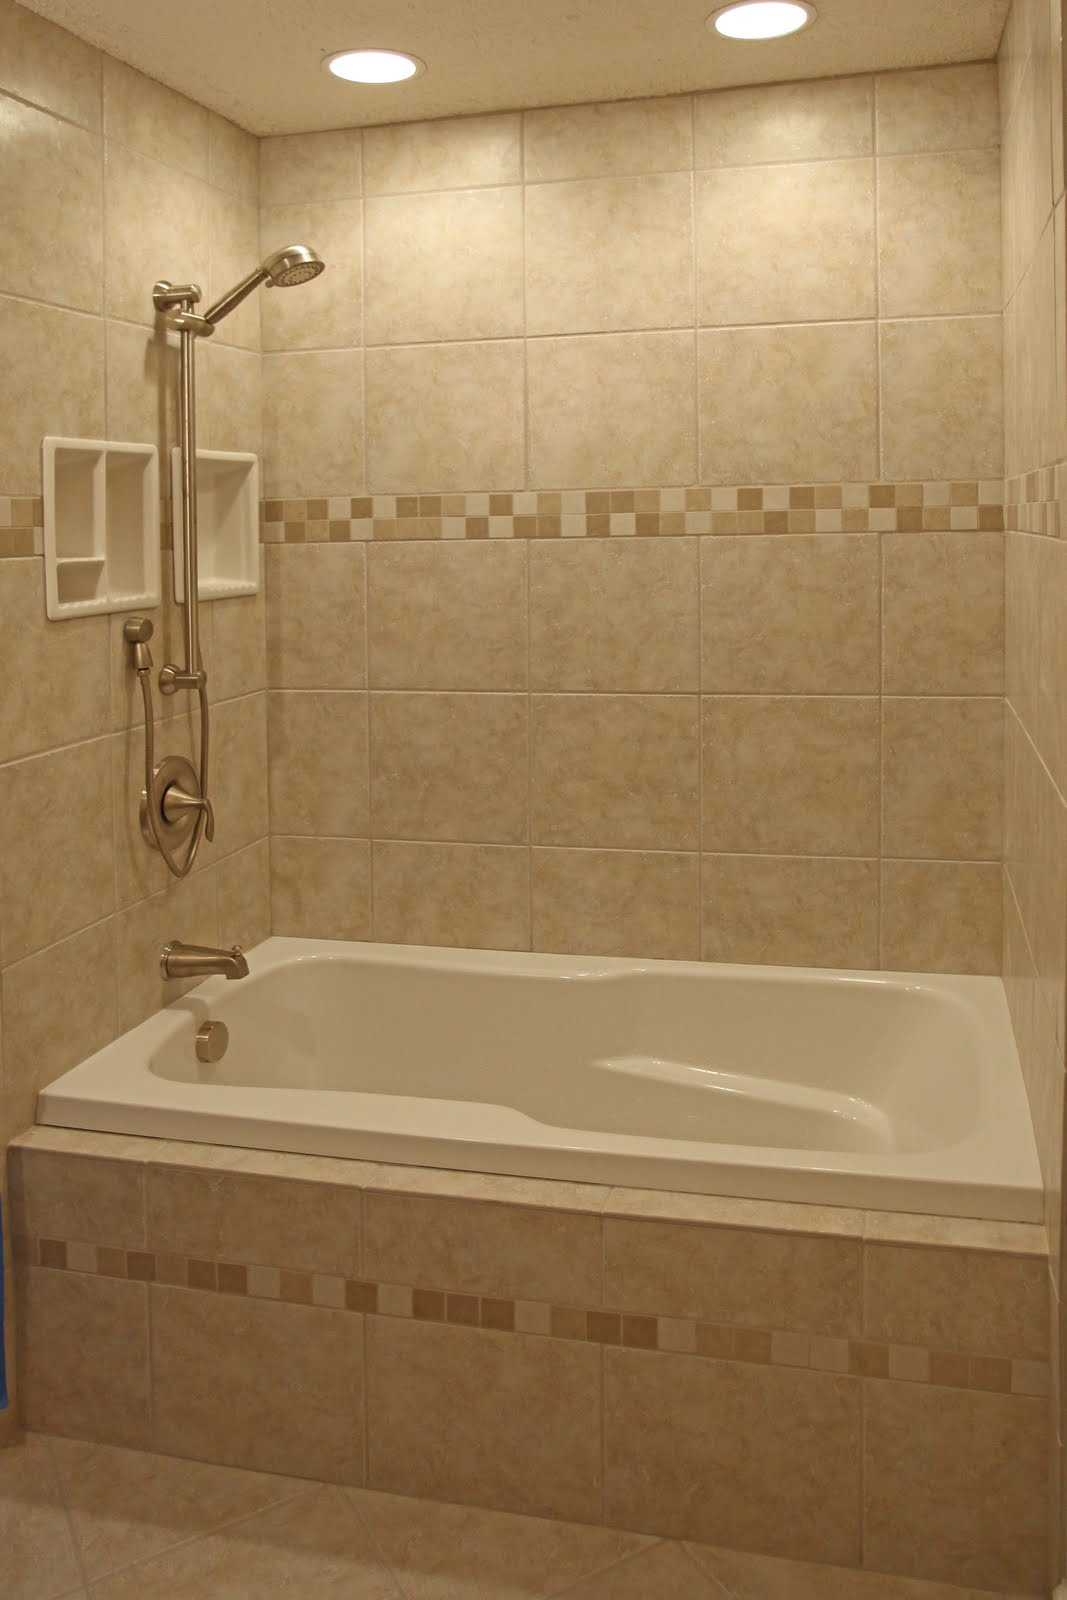 Bathroom remodeling design ideas tile shower niches for Best bathroom ideas